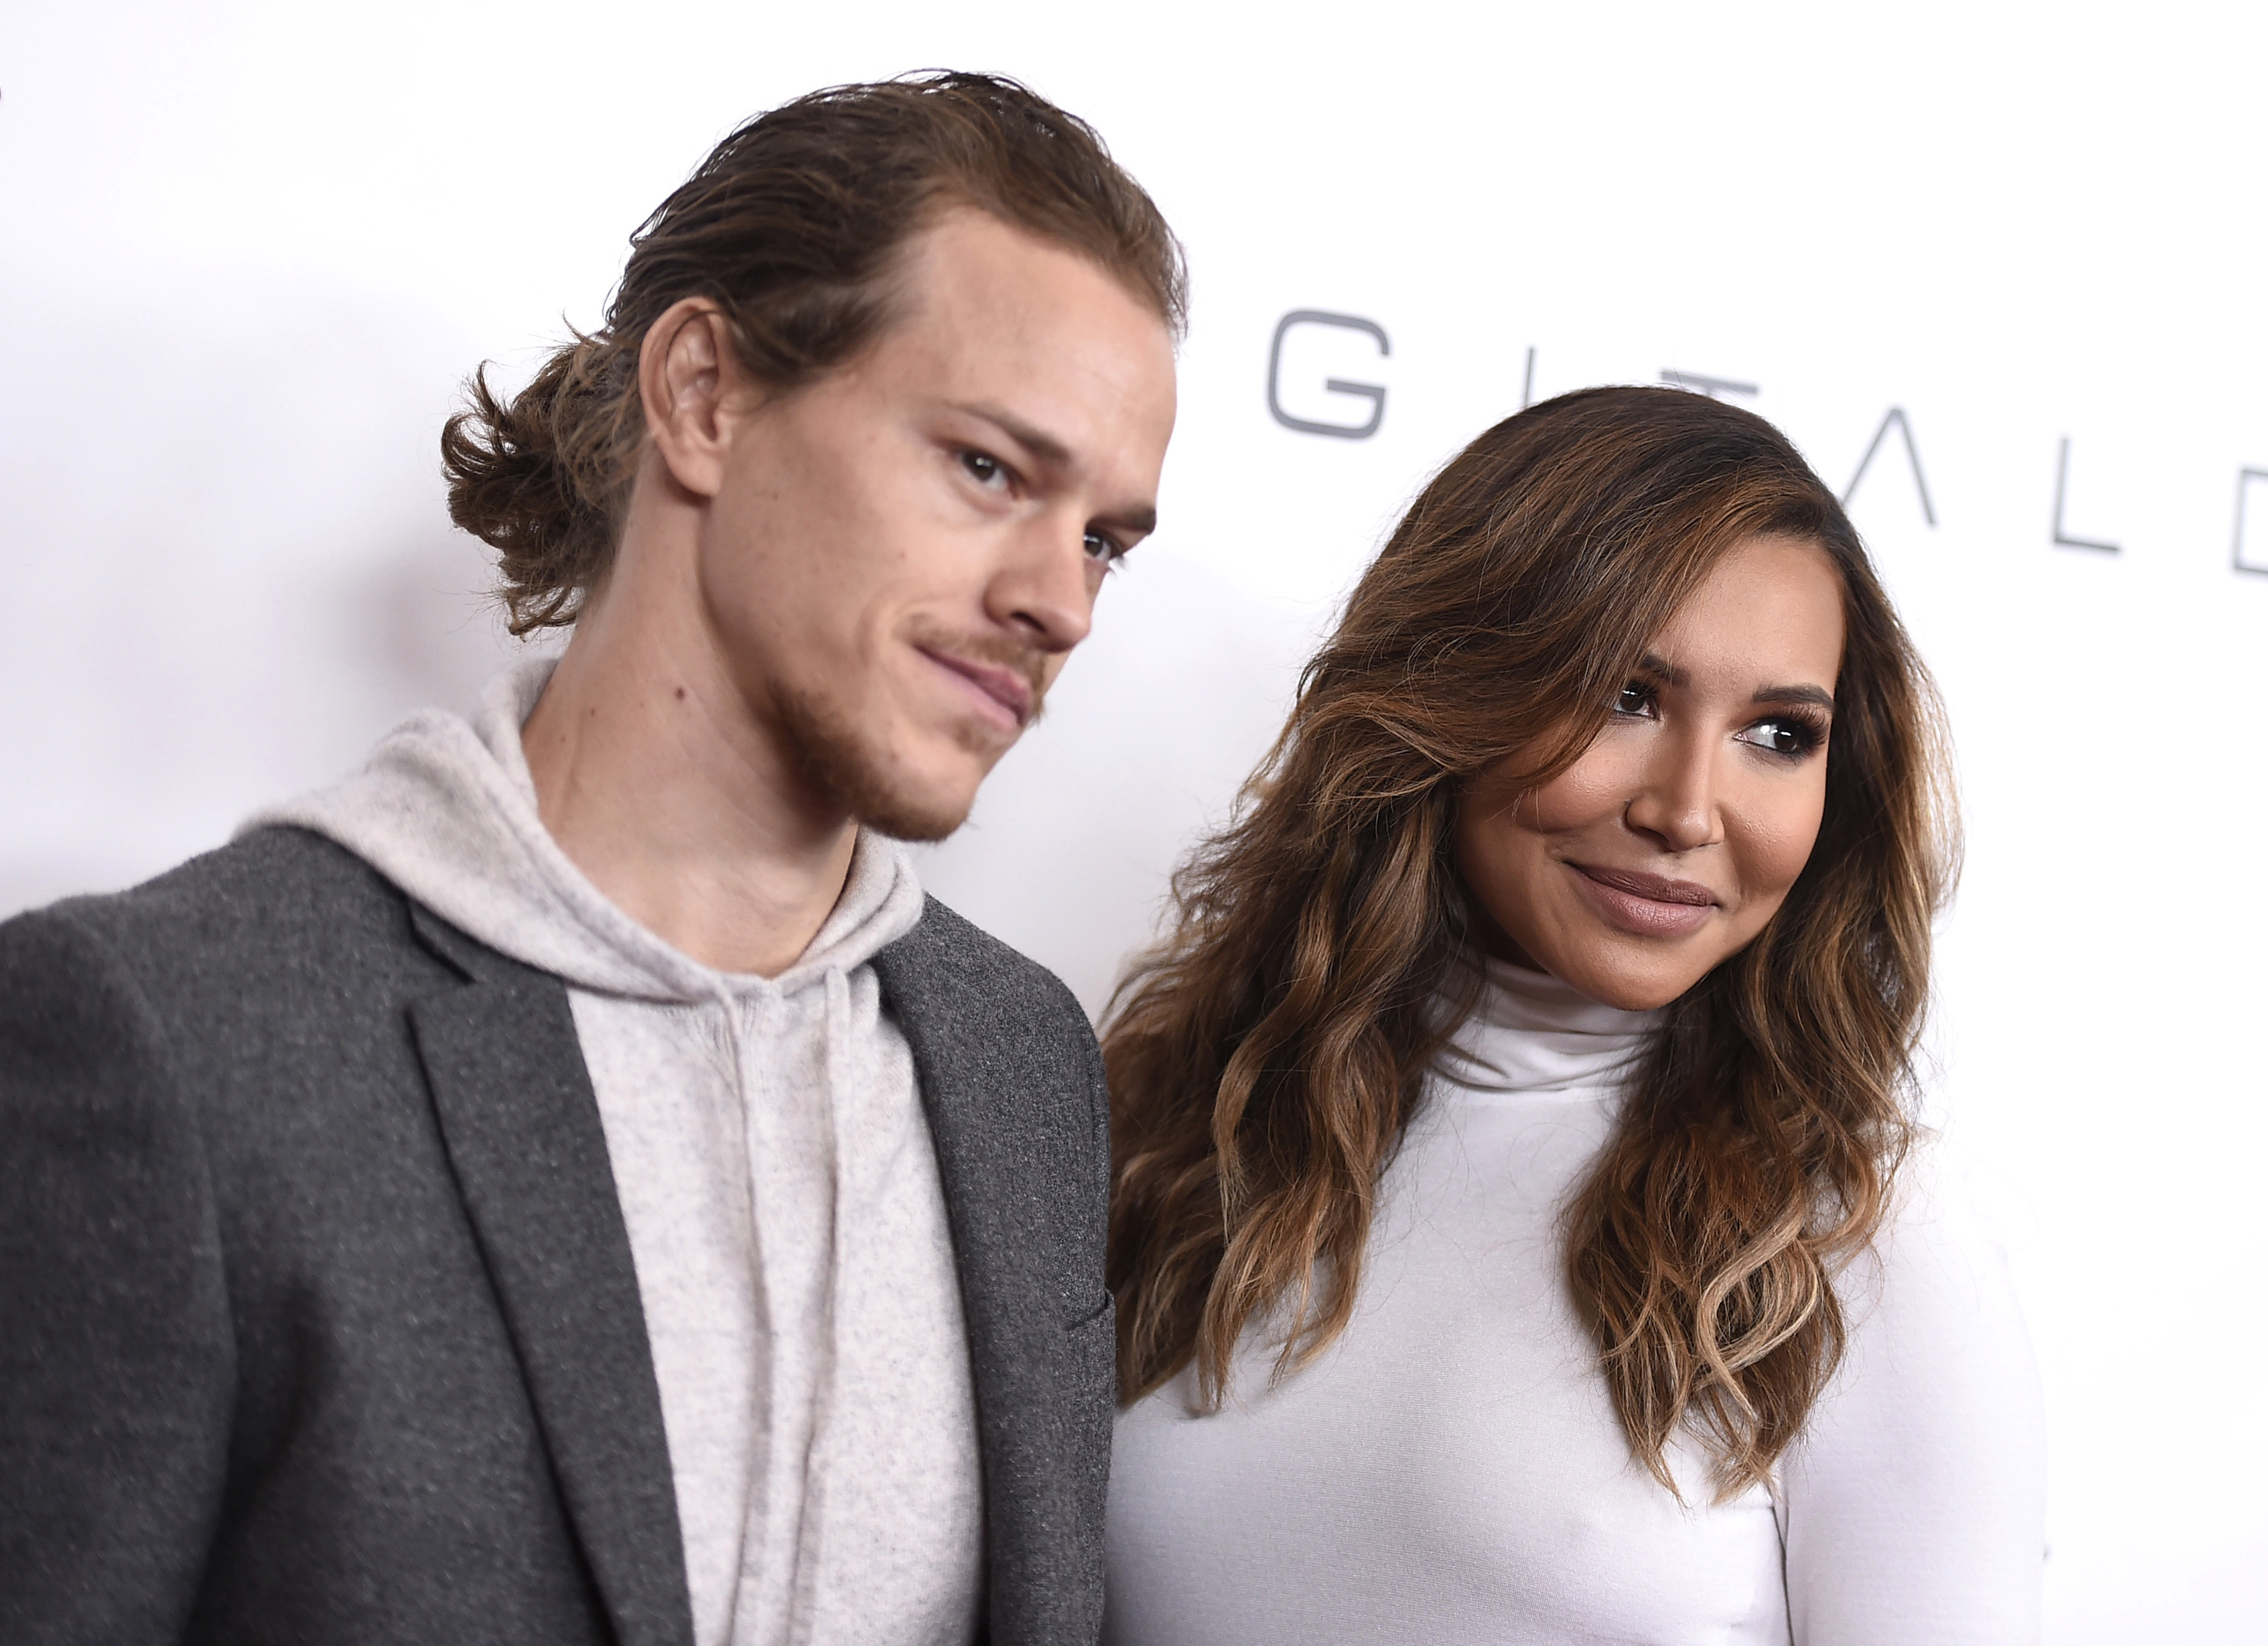 Glee Star Naya Rivera Arrested After Alleged Domestic Altercation